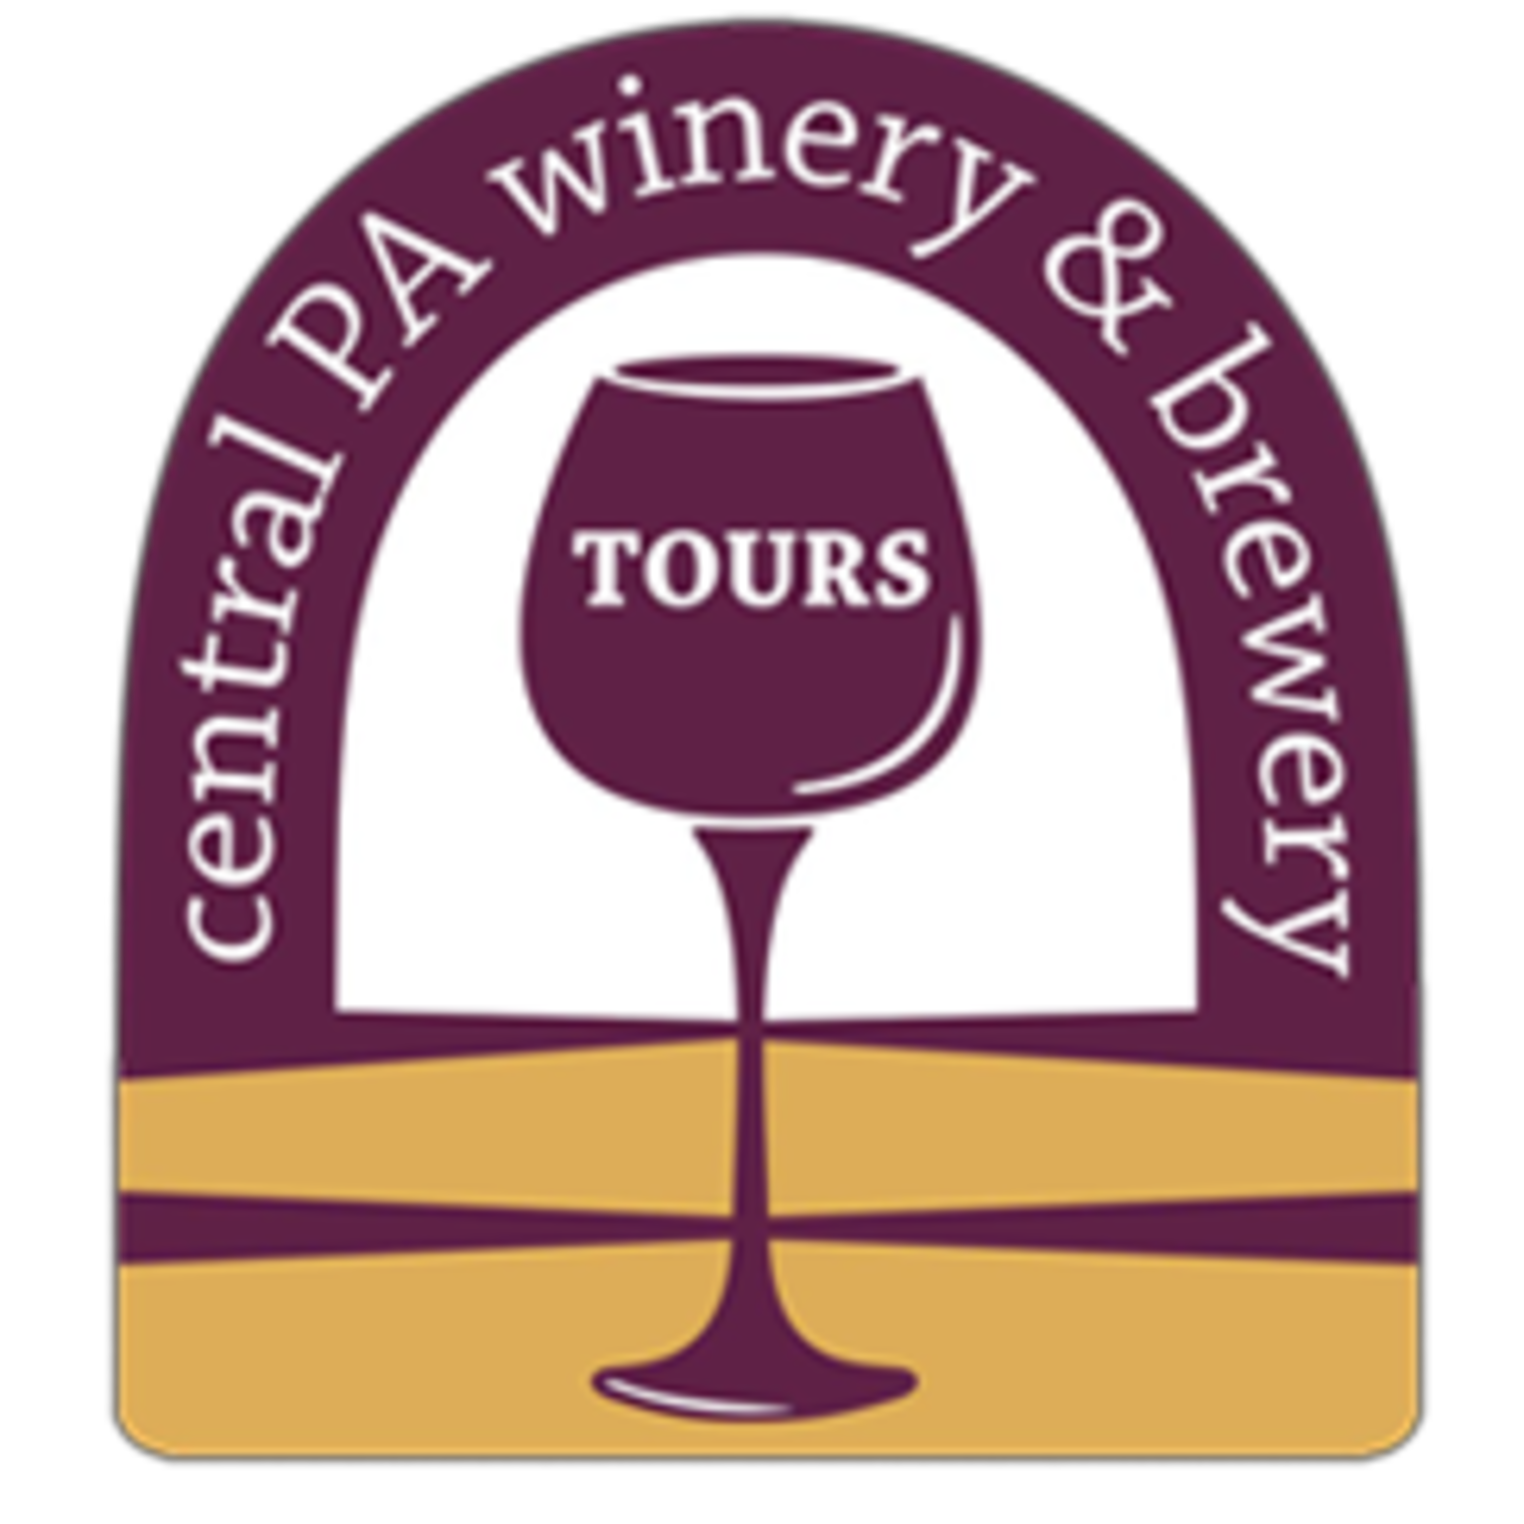 Central PA Winery & Brewery Tours